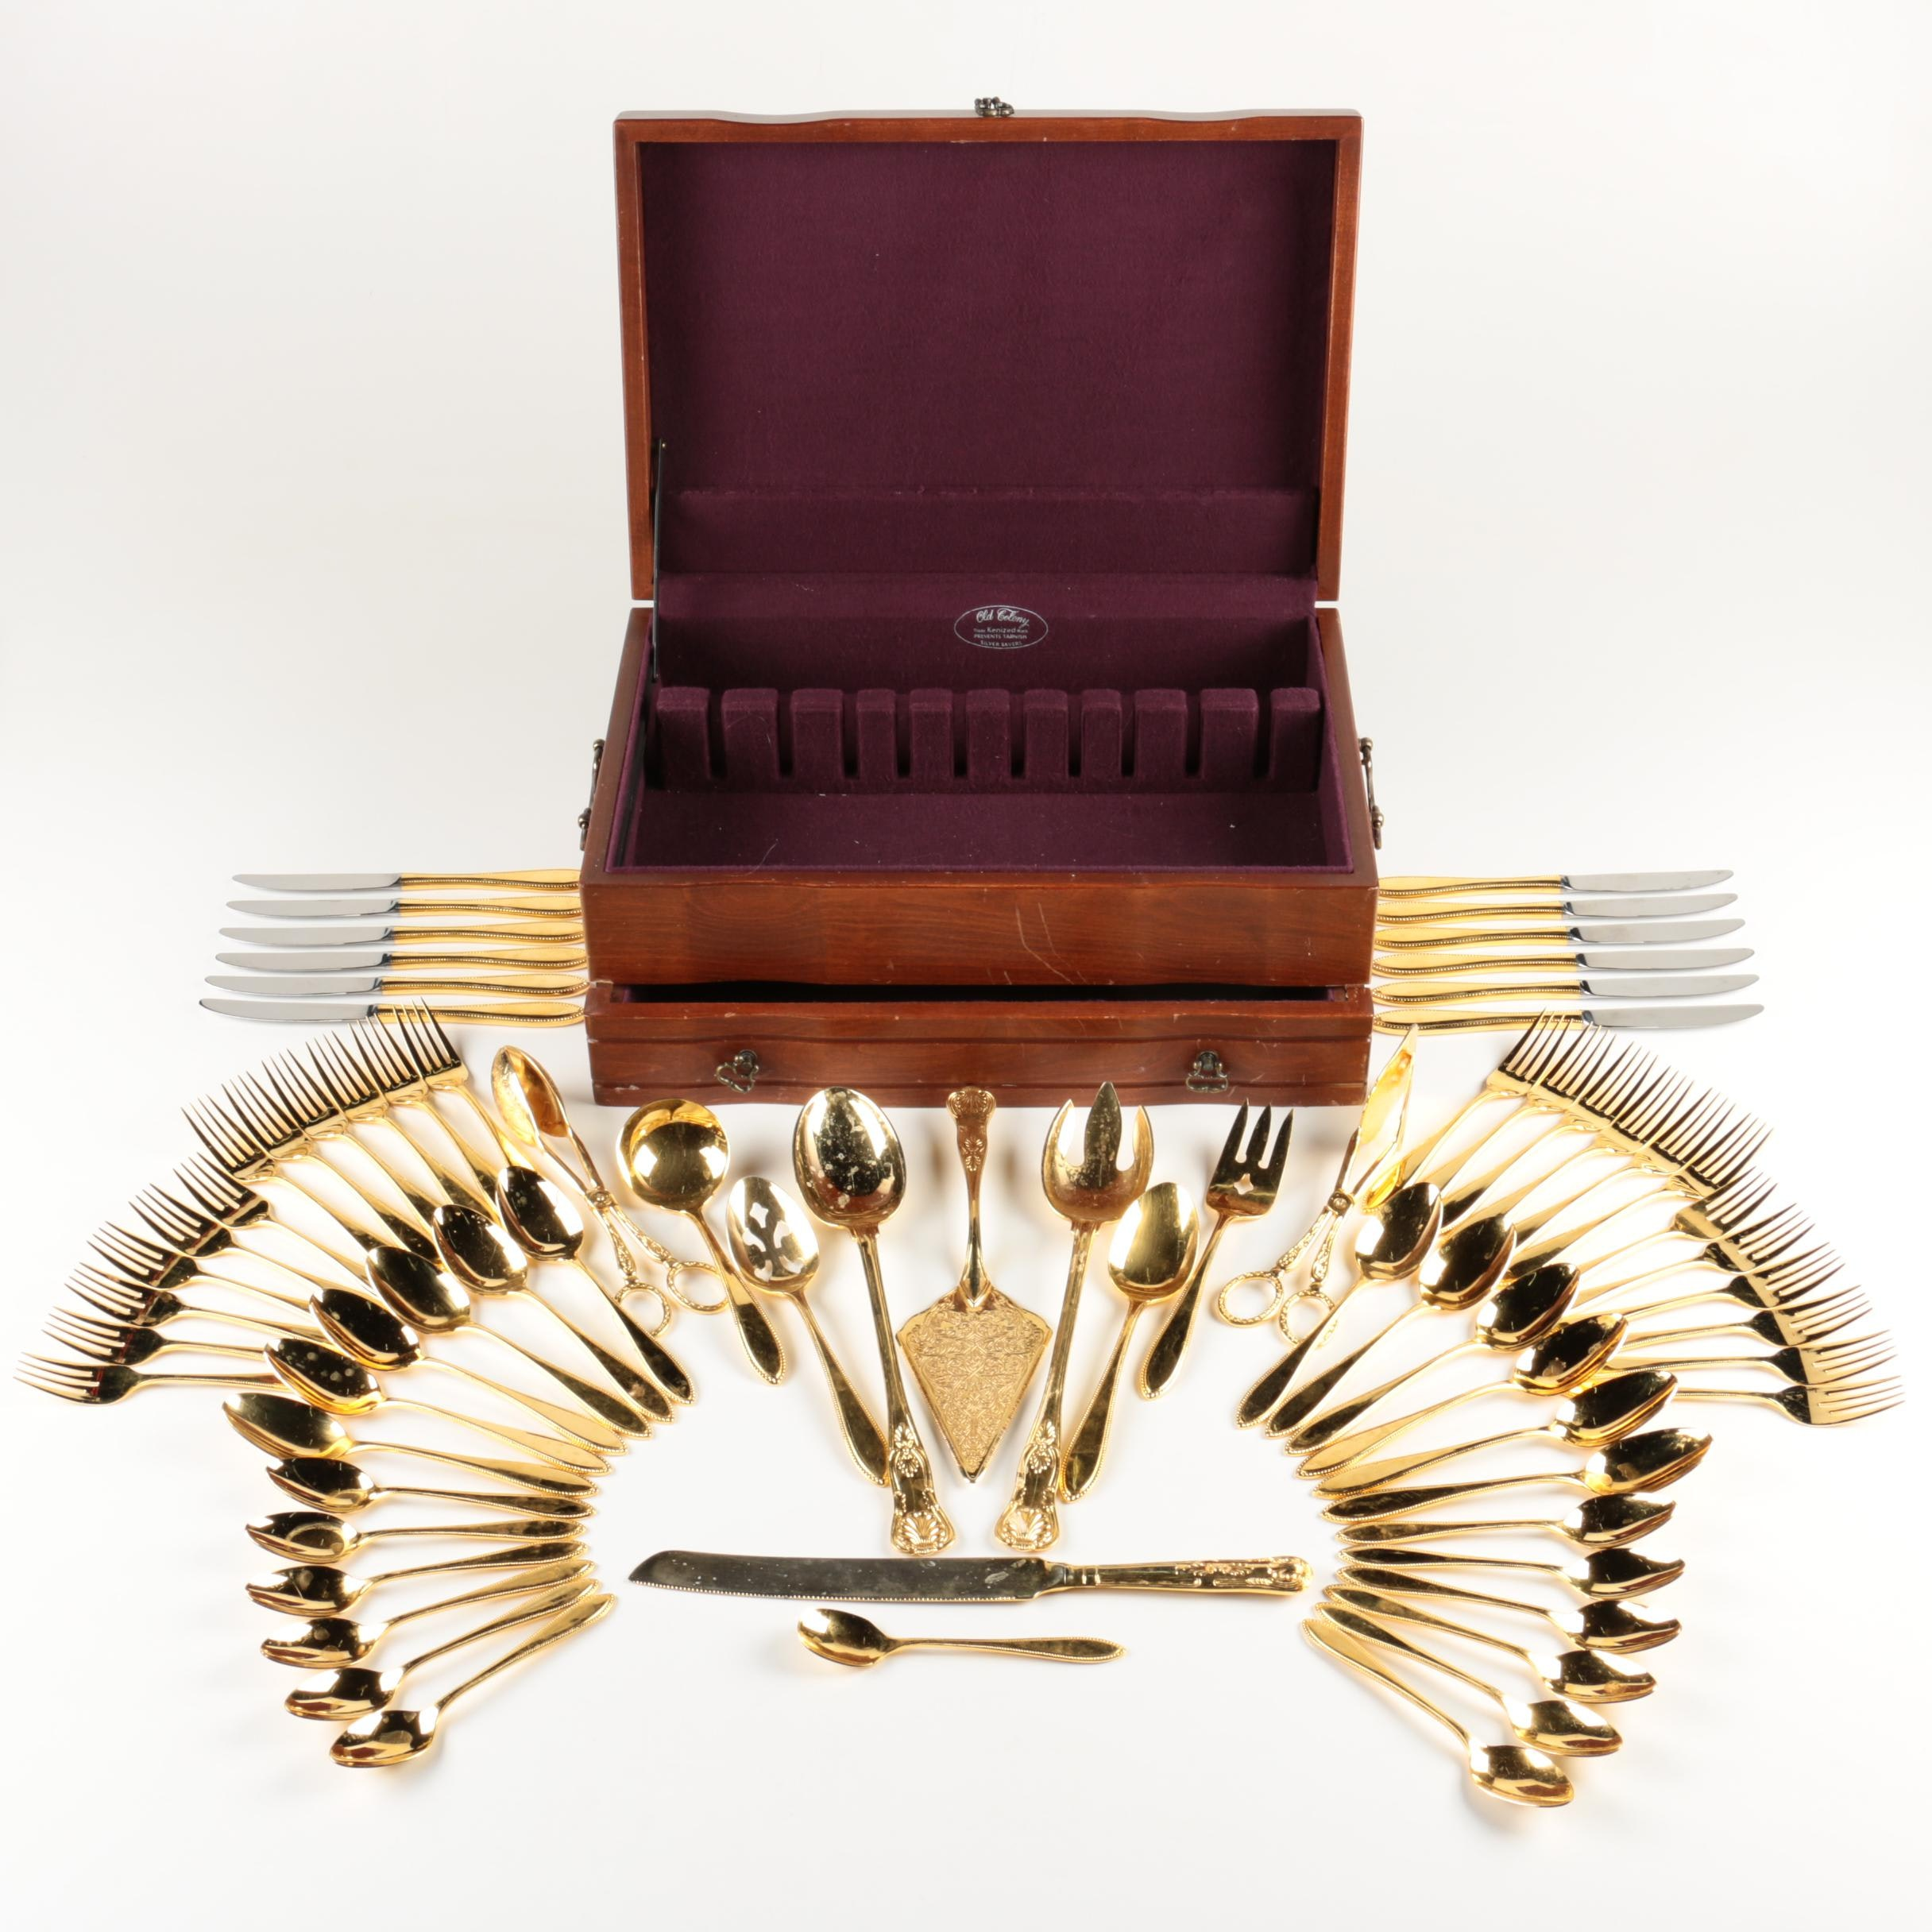 Imperial Gold 24 K Electroplate Flatware